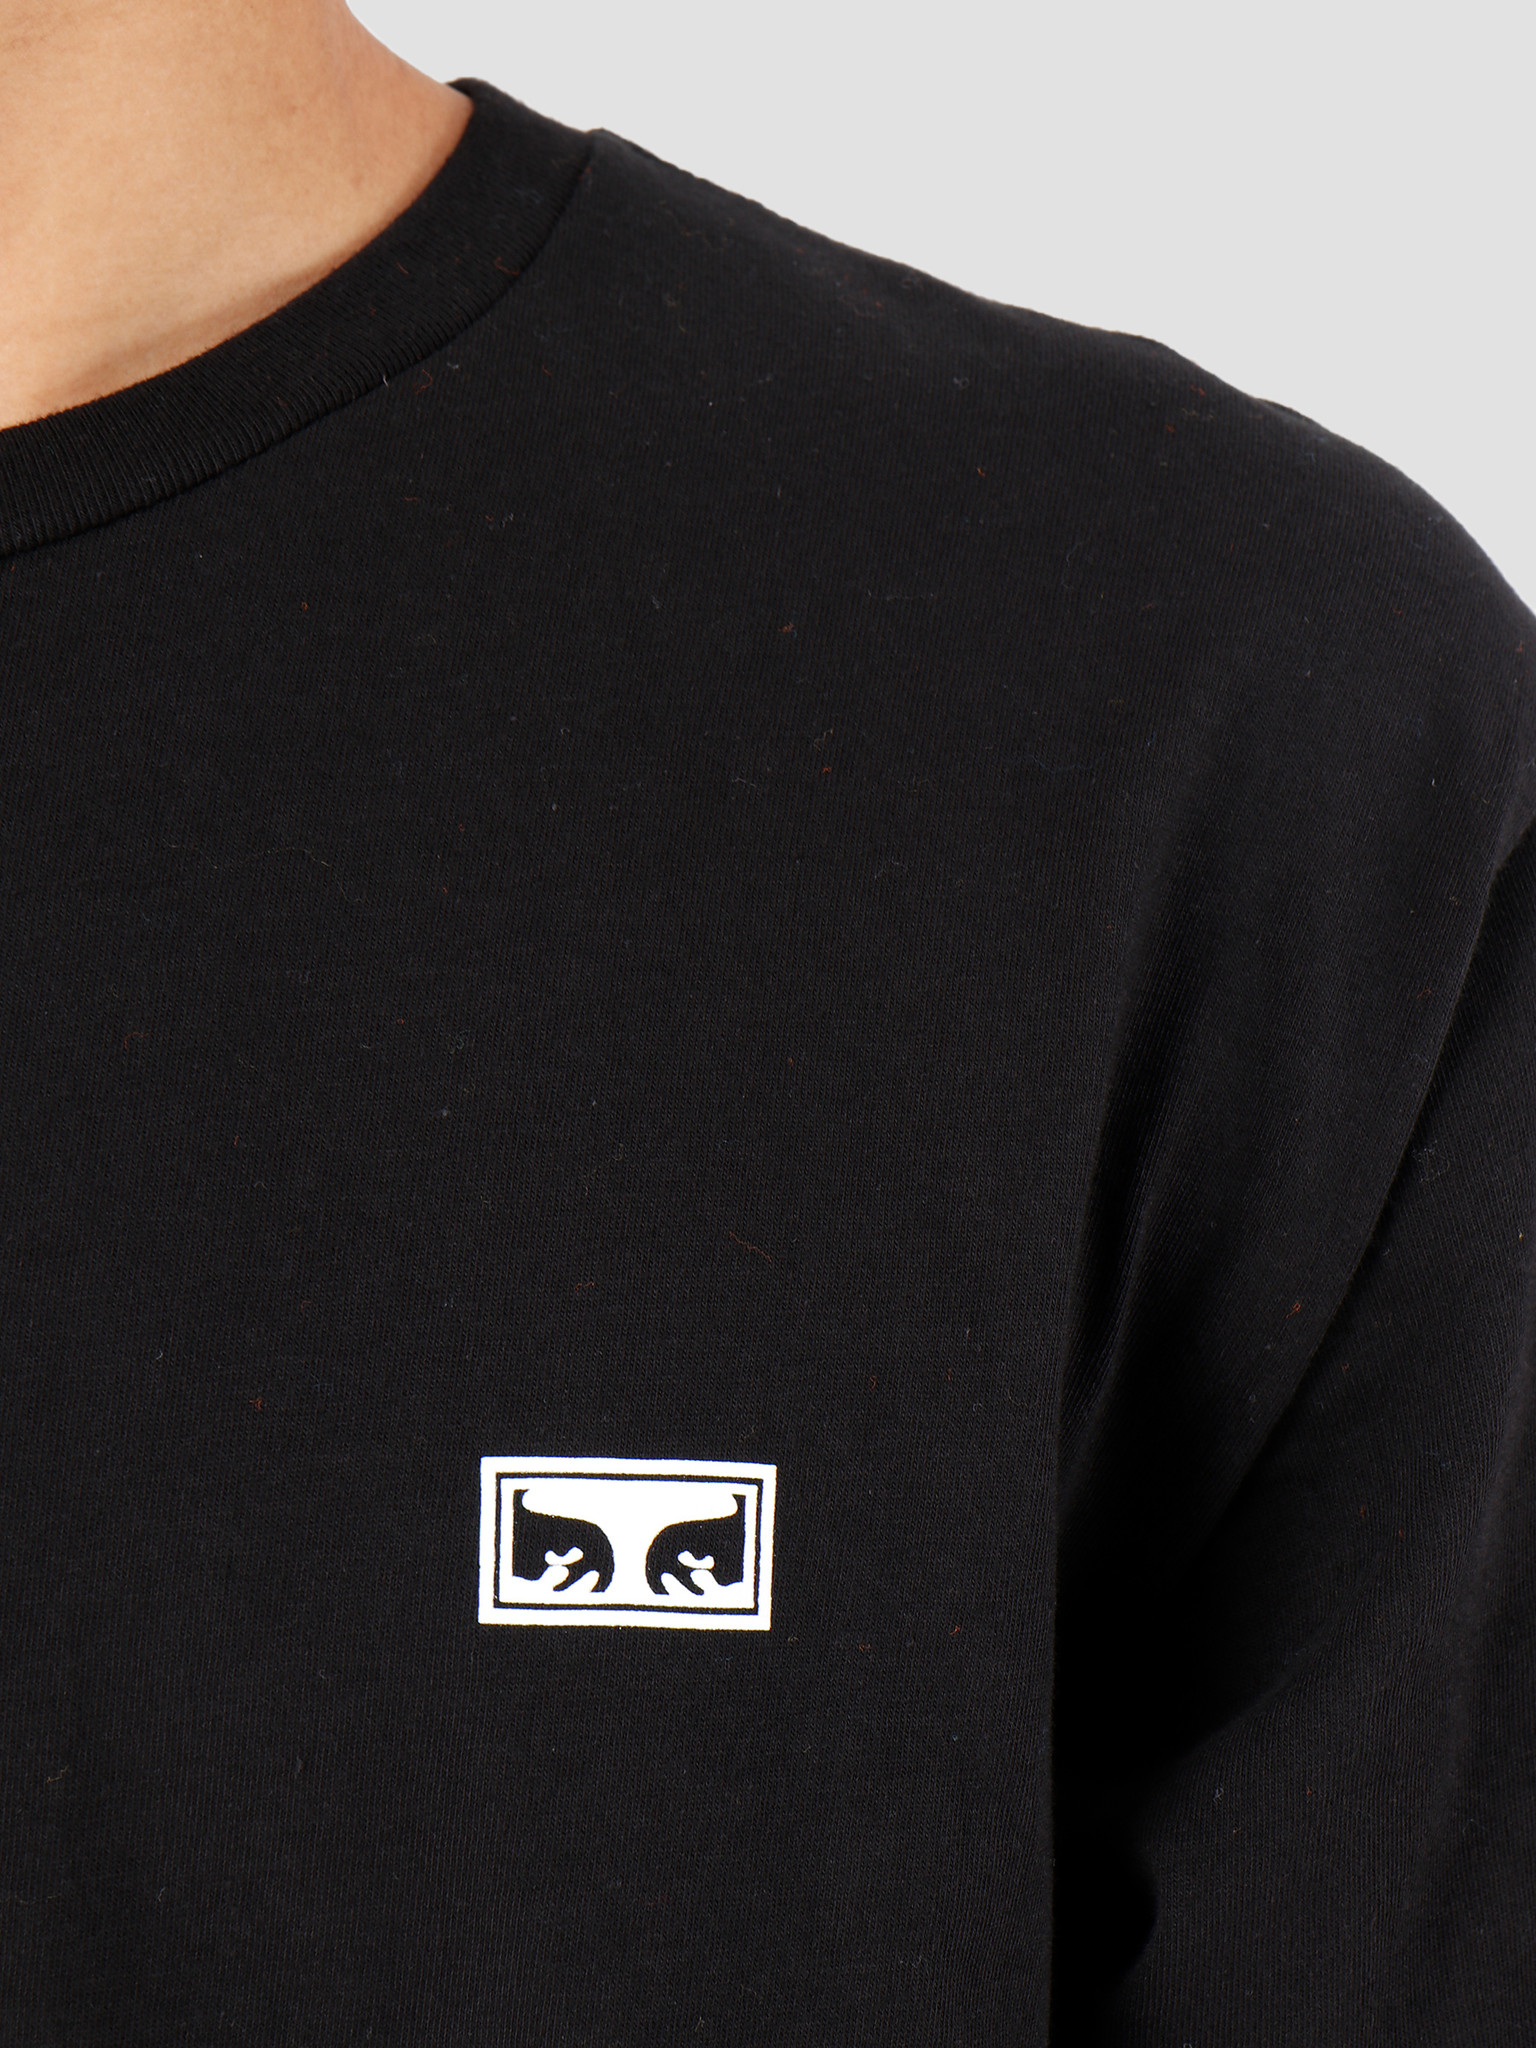 Obey Obey Intl. Chaos & Dishortsleeveent Black 163082077-BLK